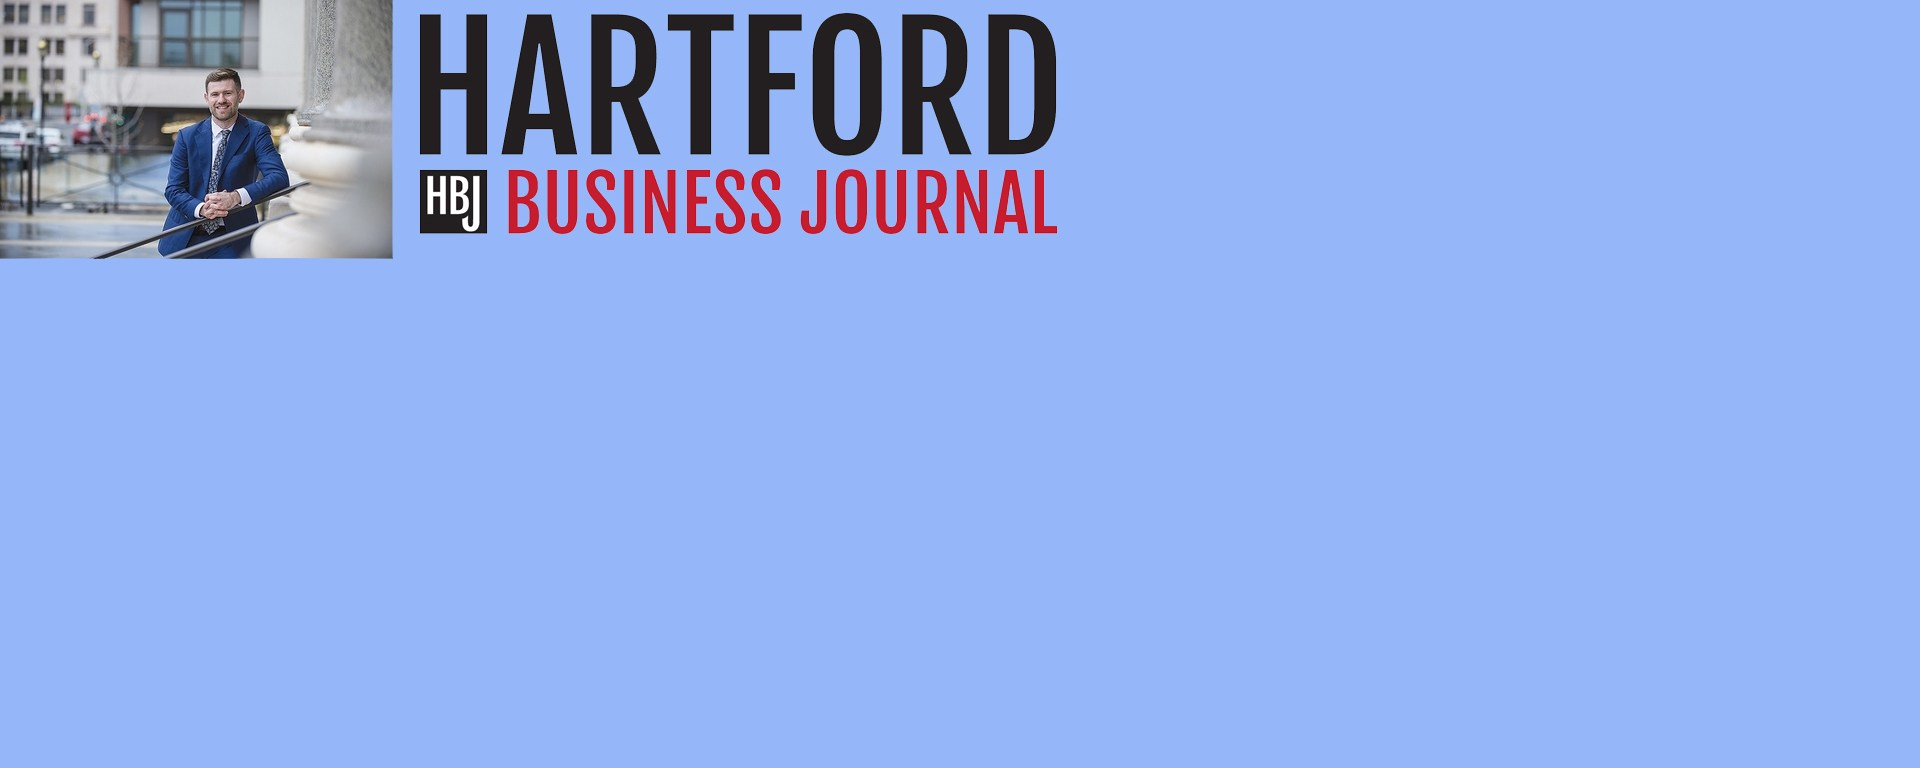 Eddie Meyer Receives Hartford Business Journal's 2019 C-Suite Award